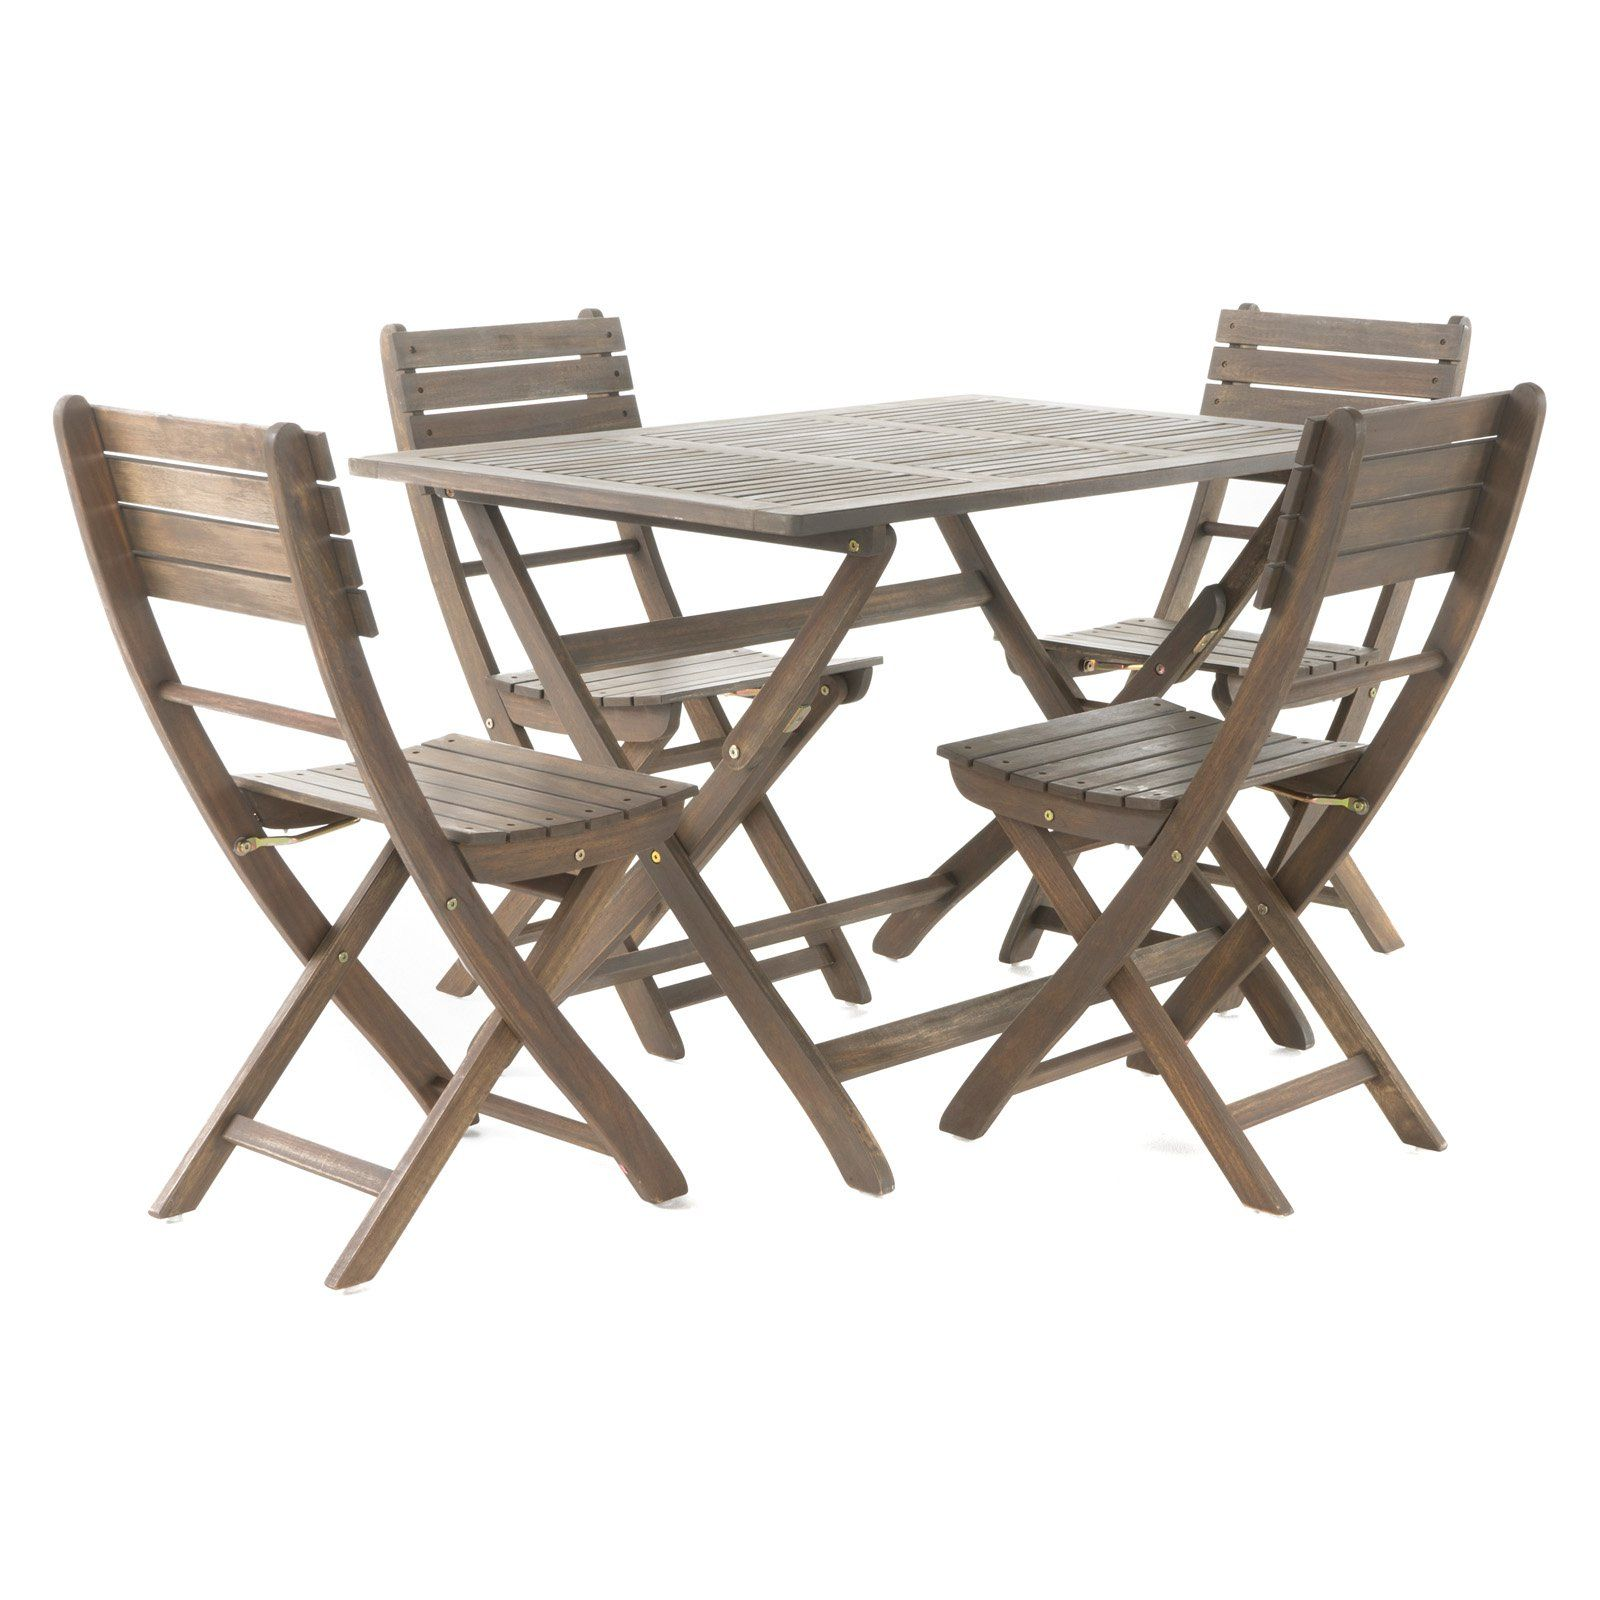 Outdoor Pablo Acacia Wood Foldable Patio Dining Set Products In